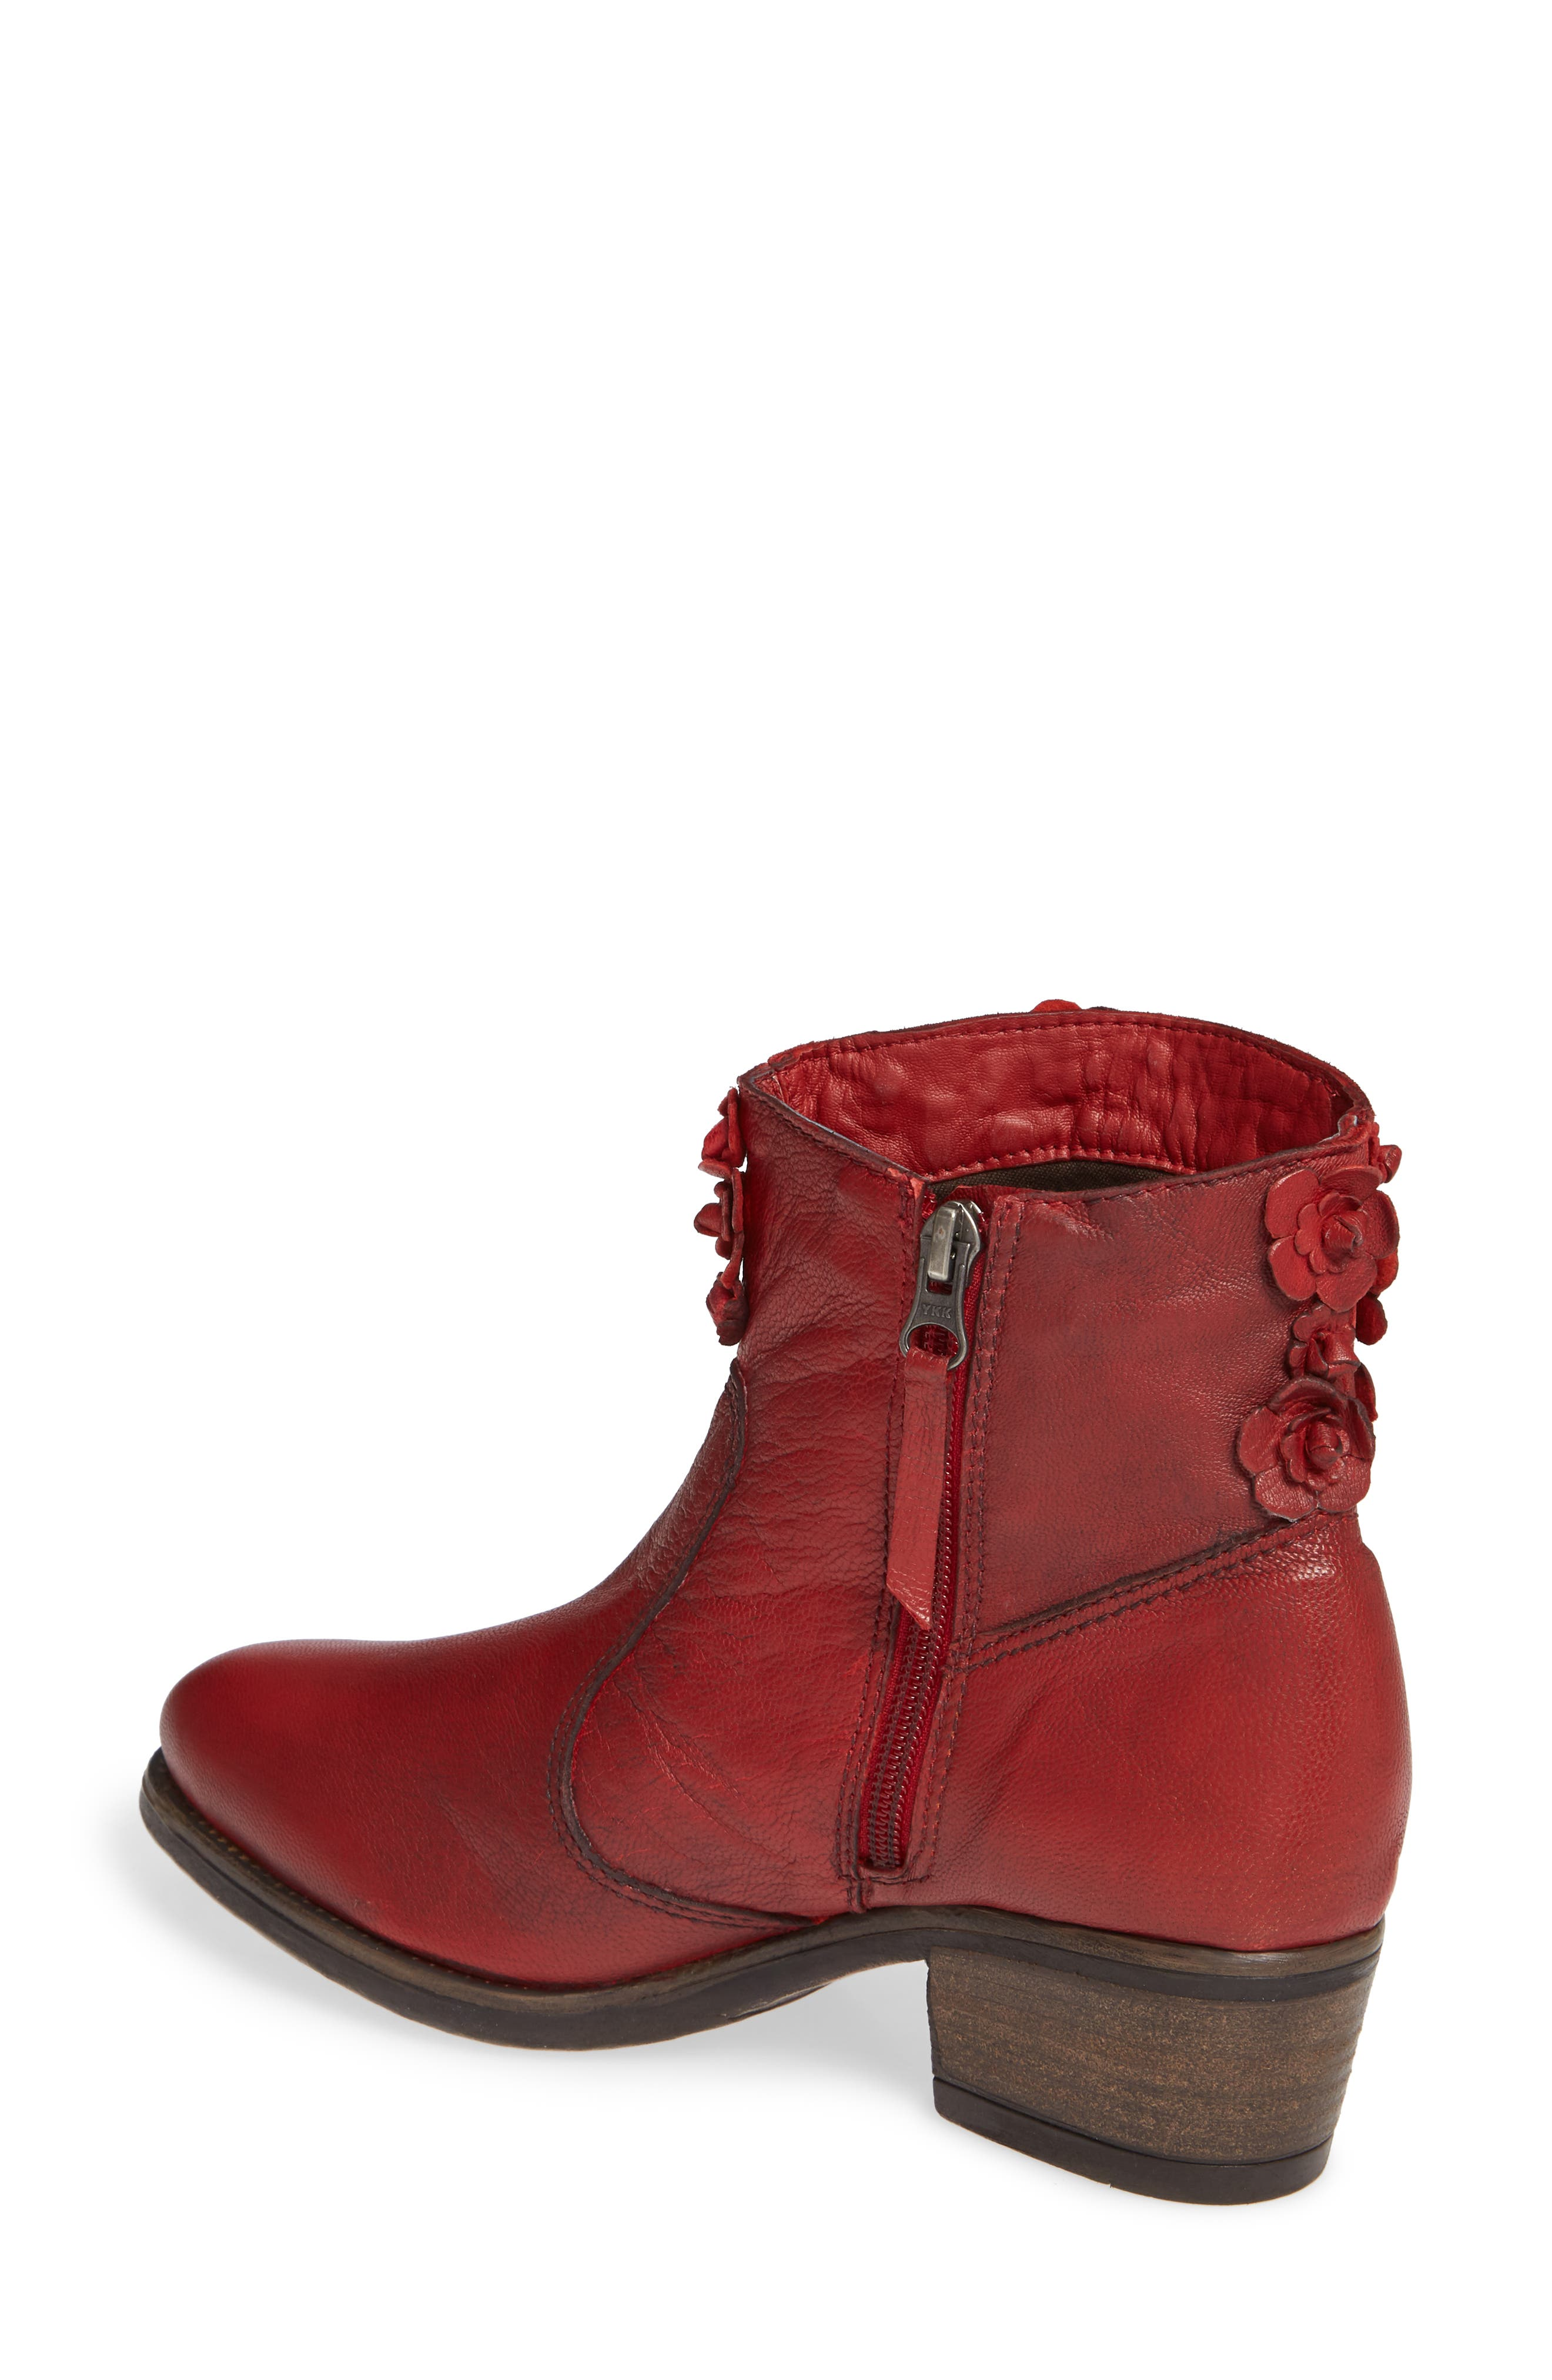 Sapphire Bootie,                             Alternate thumbnail 2, color,                             RED LEATHER